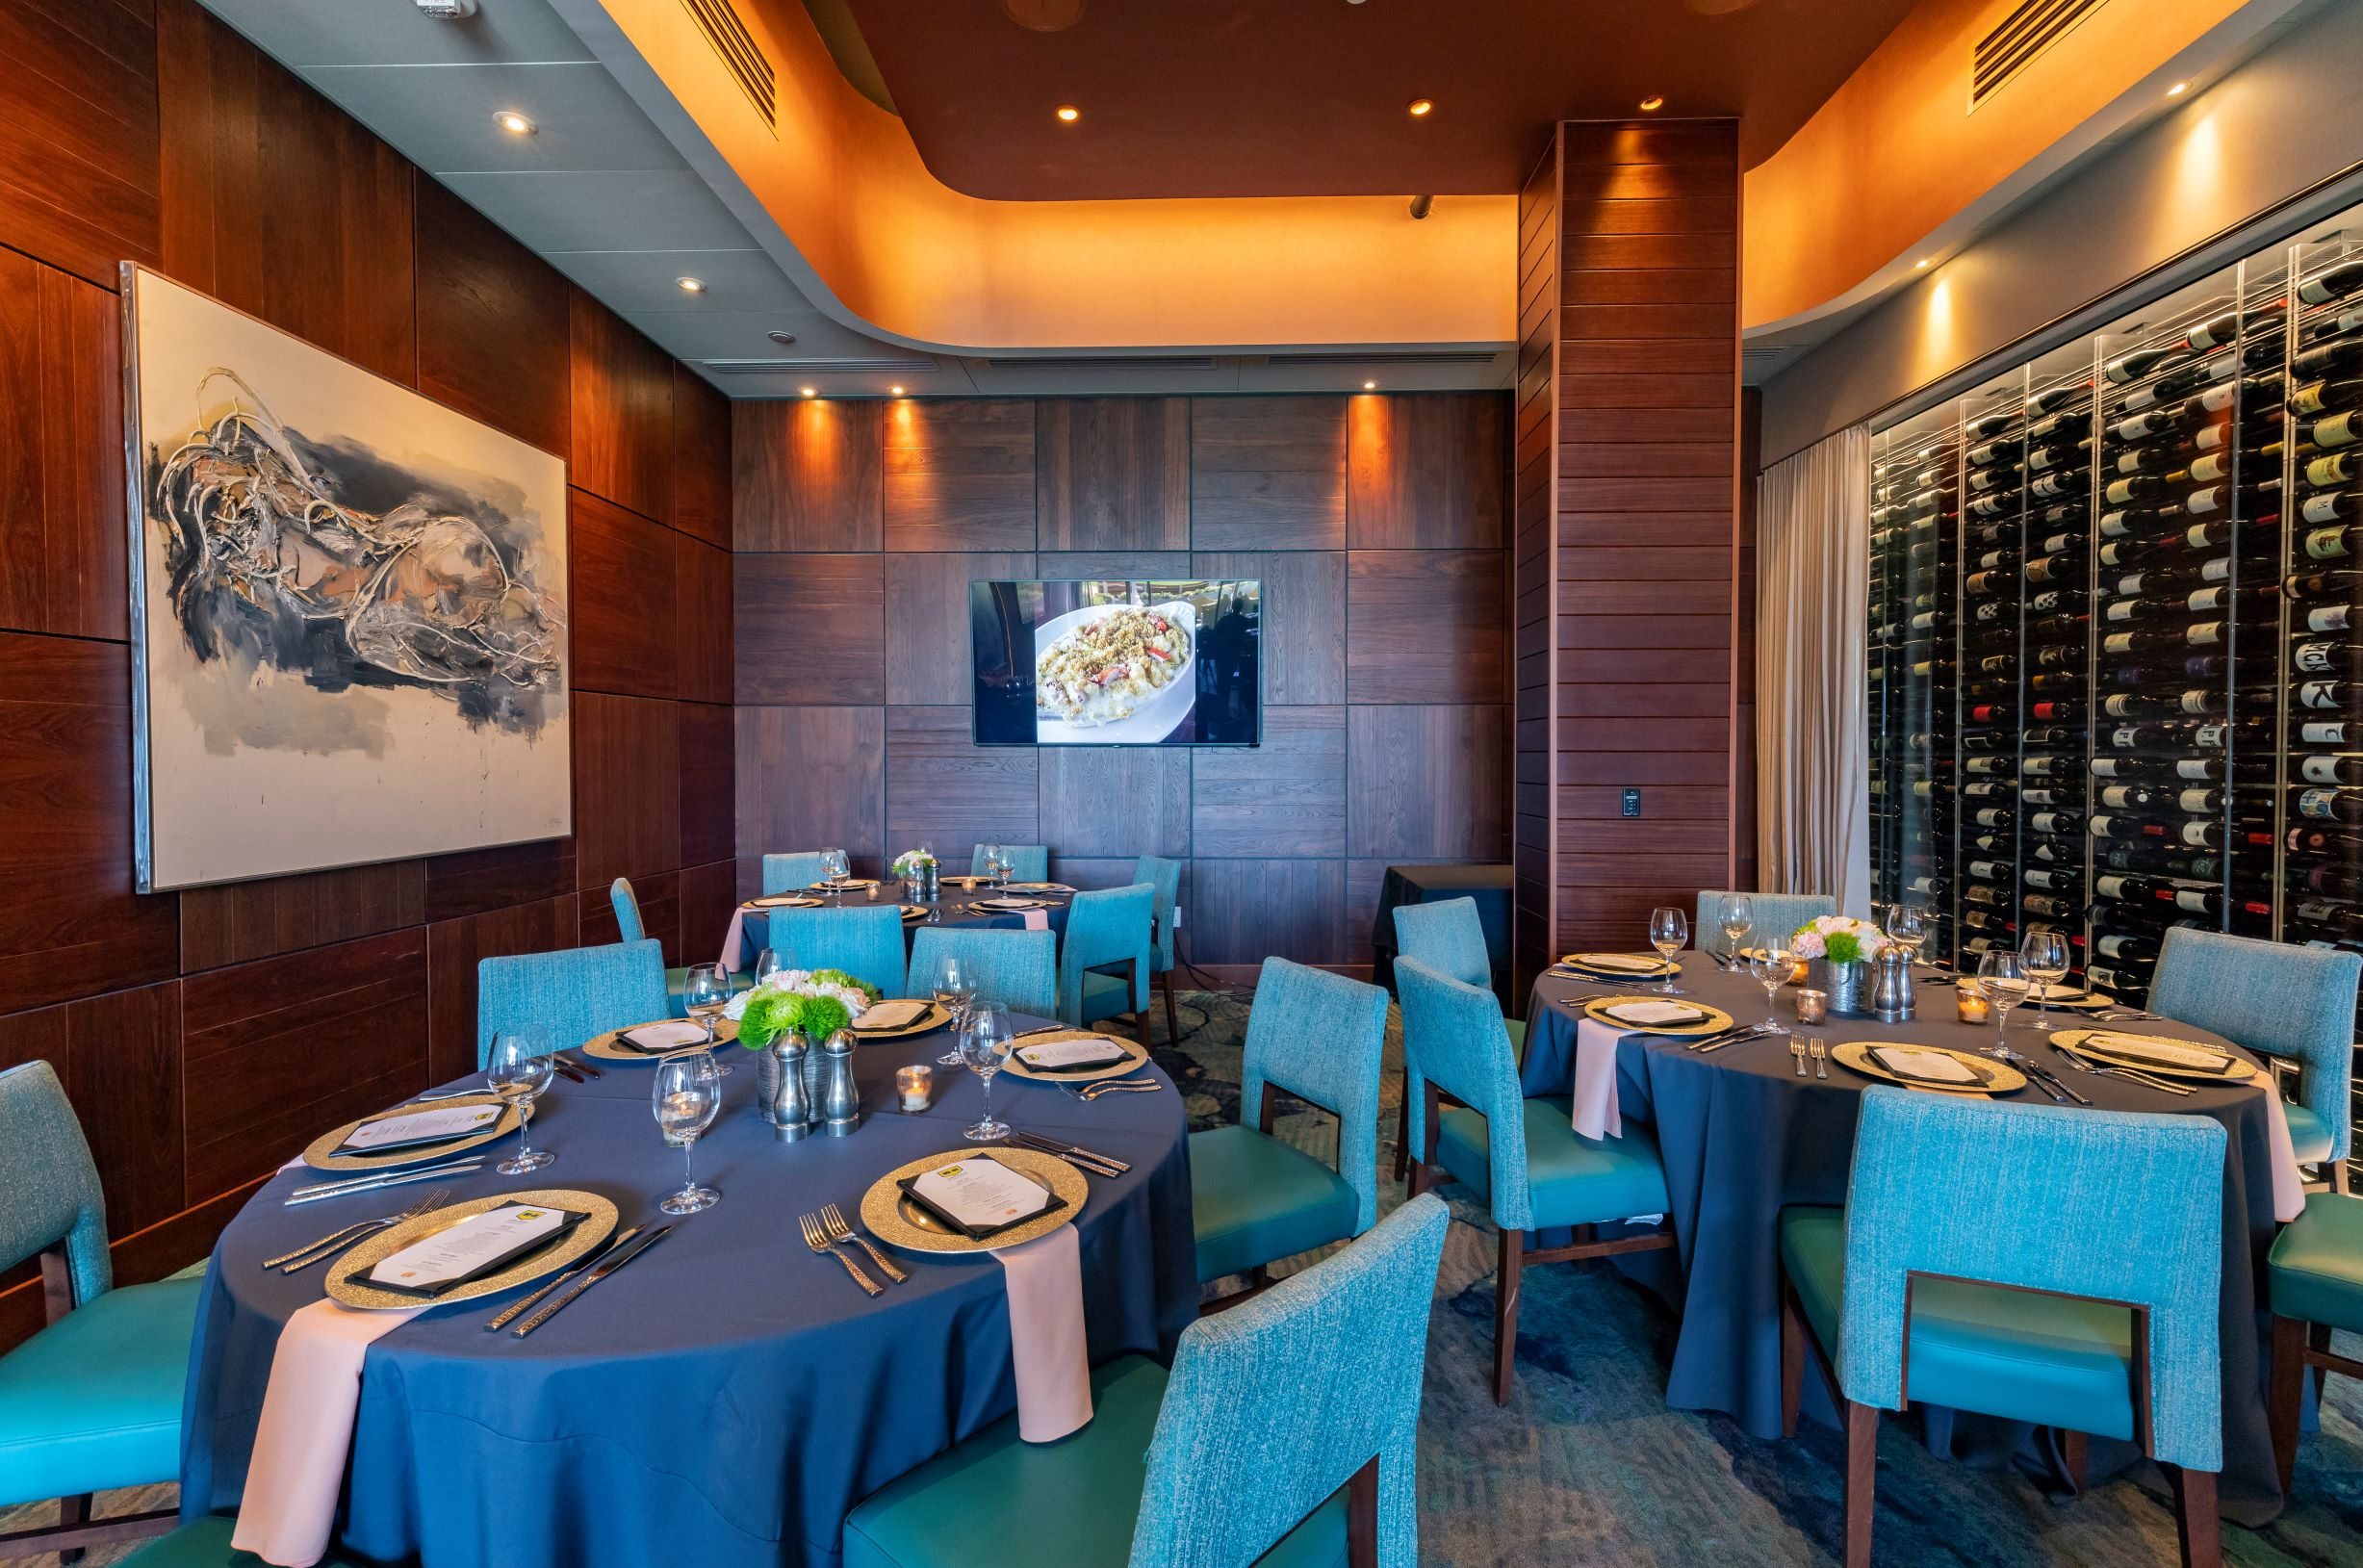 Del Frisco's Double Eagle Steakhouse San Diego Bayfront Room private dining room